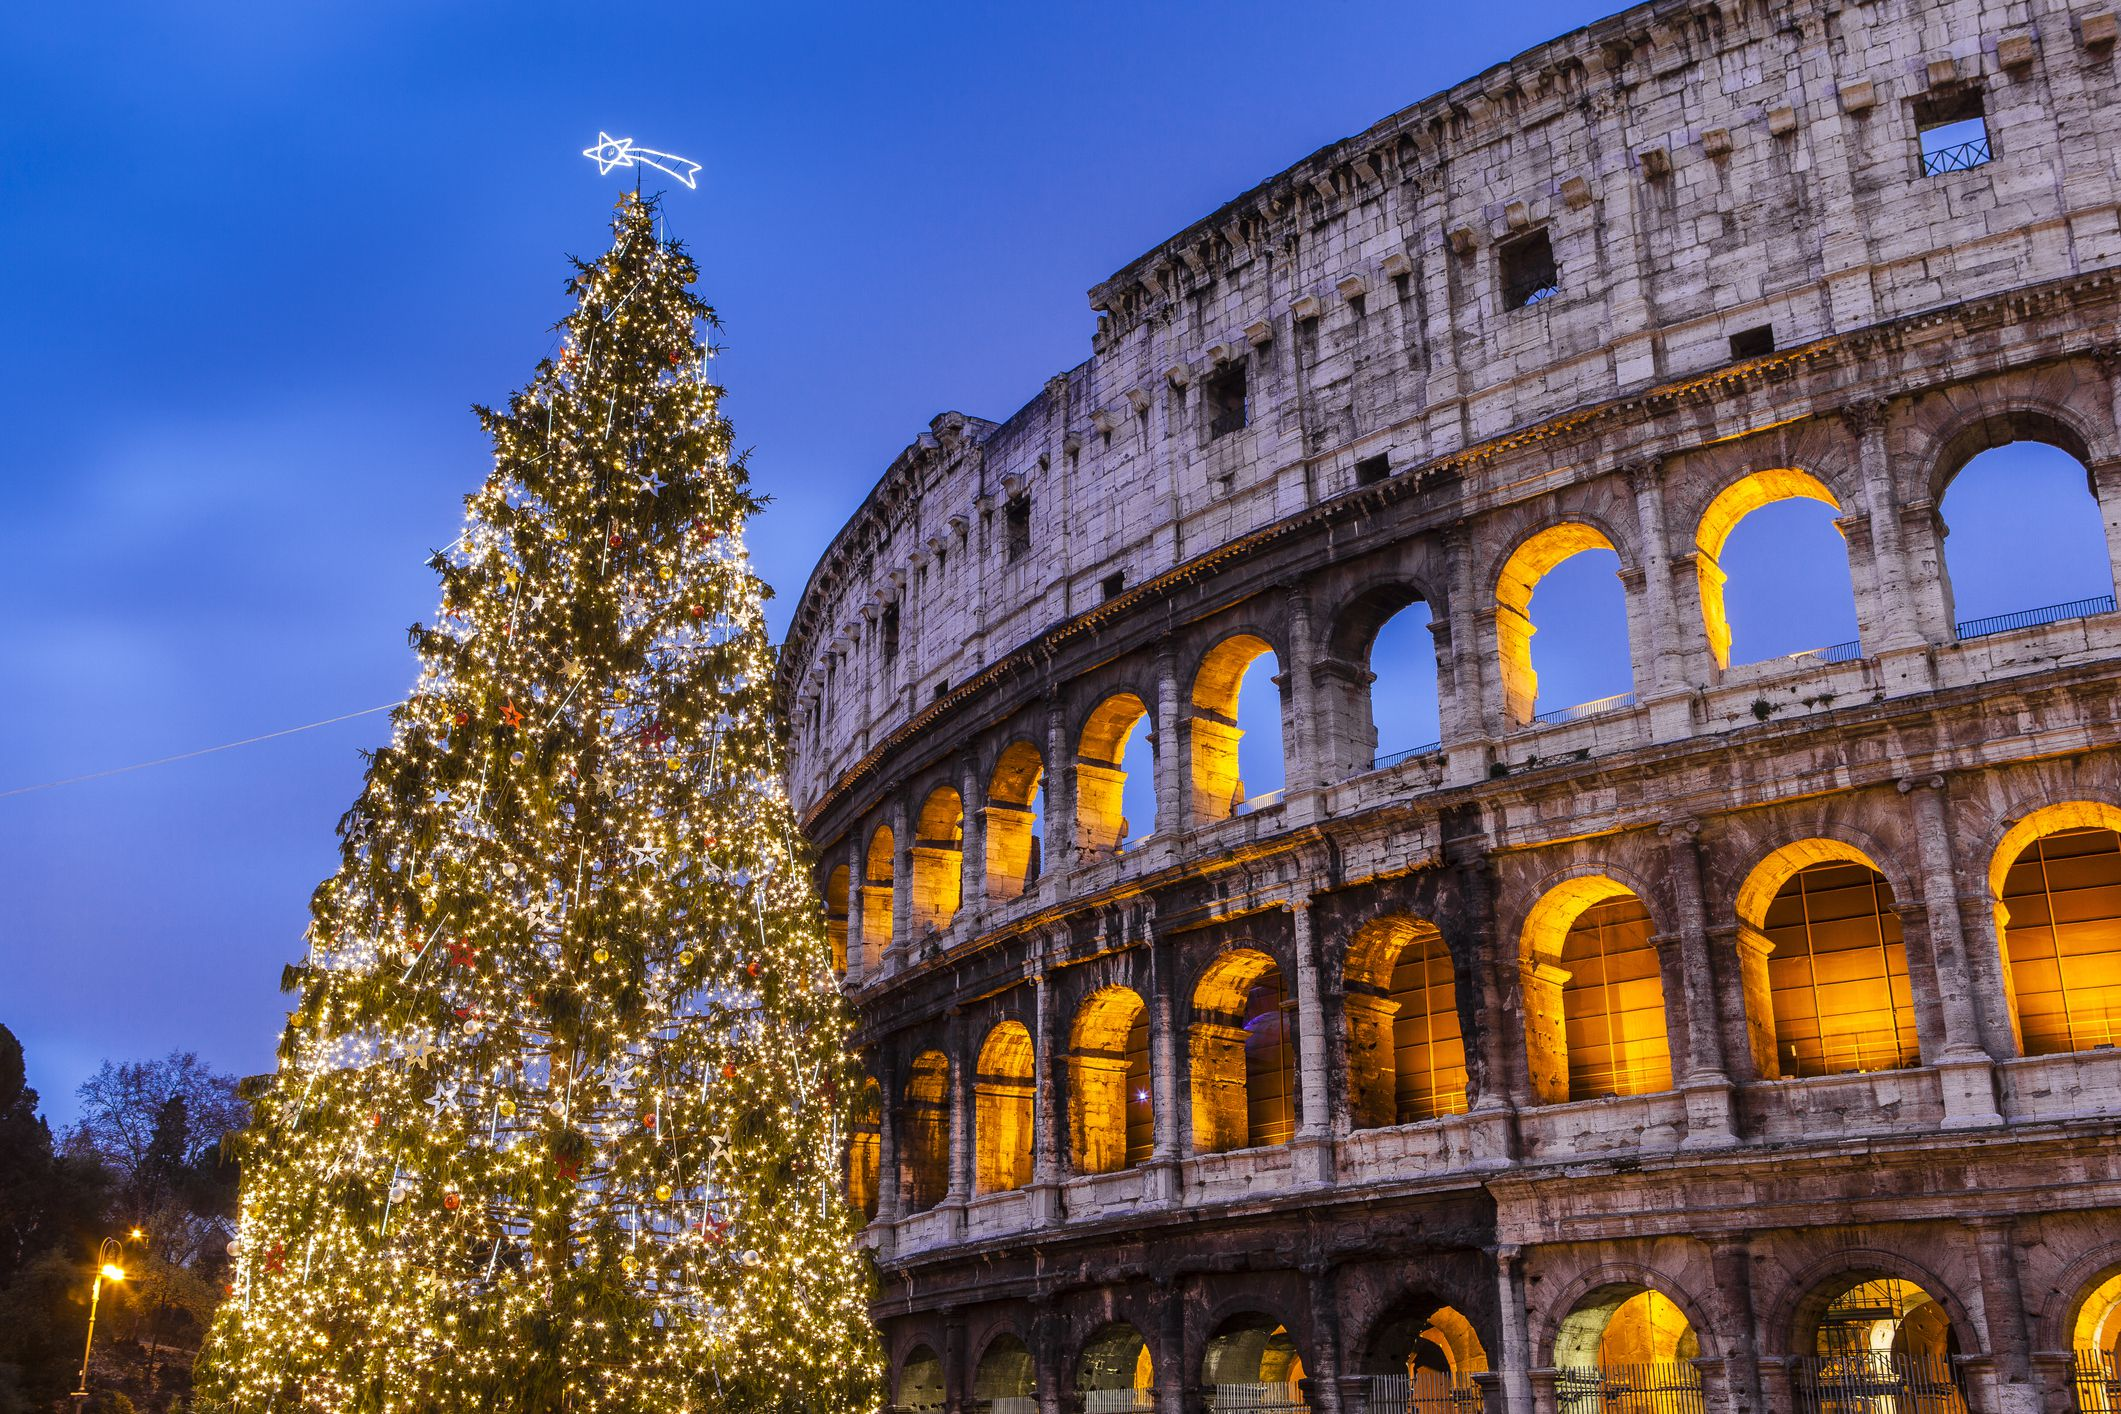 Christmas In Italy.Things To Do For Christmas In Italy